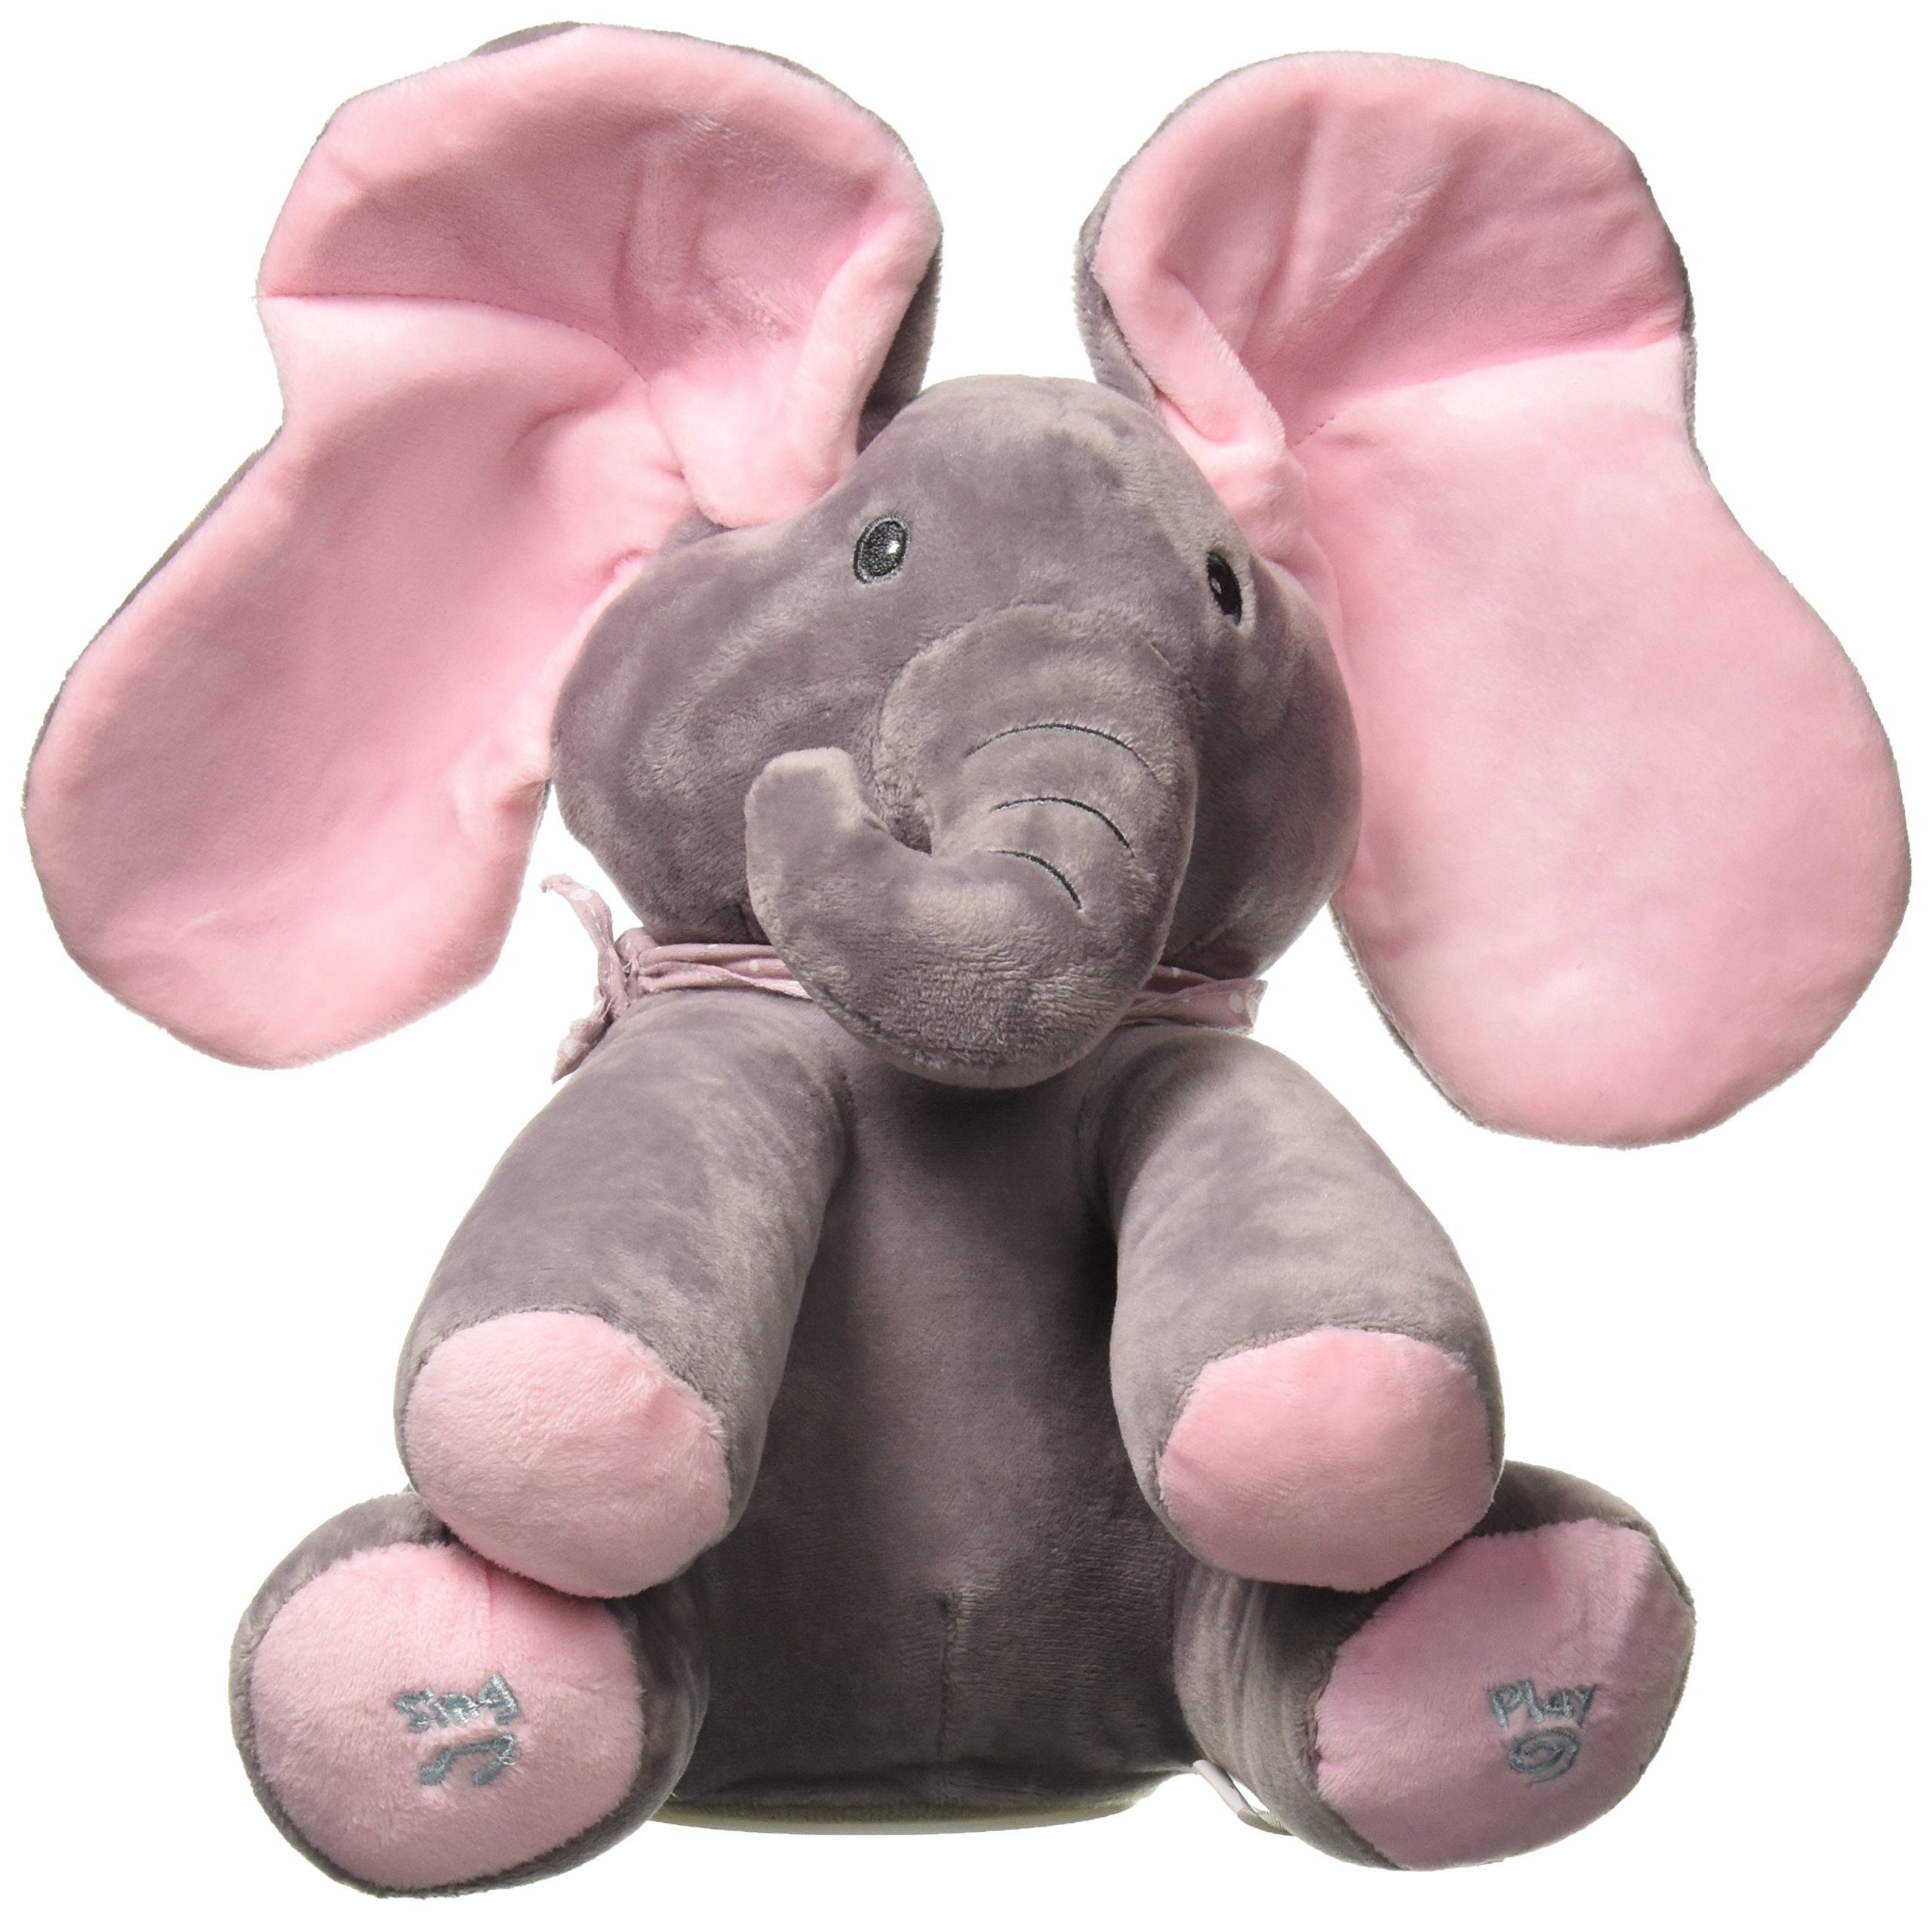 Emily Elephant Animated Plush Singing Elephant with Peek-a-boo Interactive Feature by Dimple by Dimple